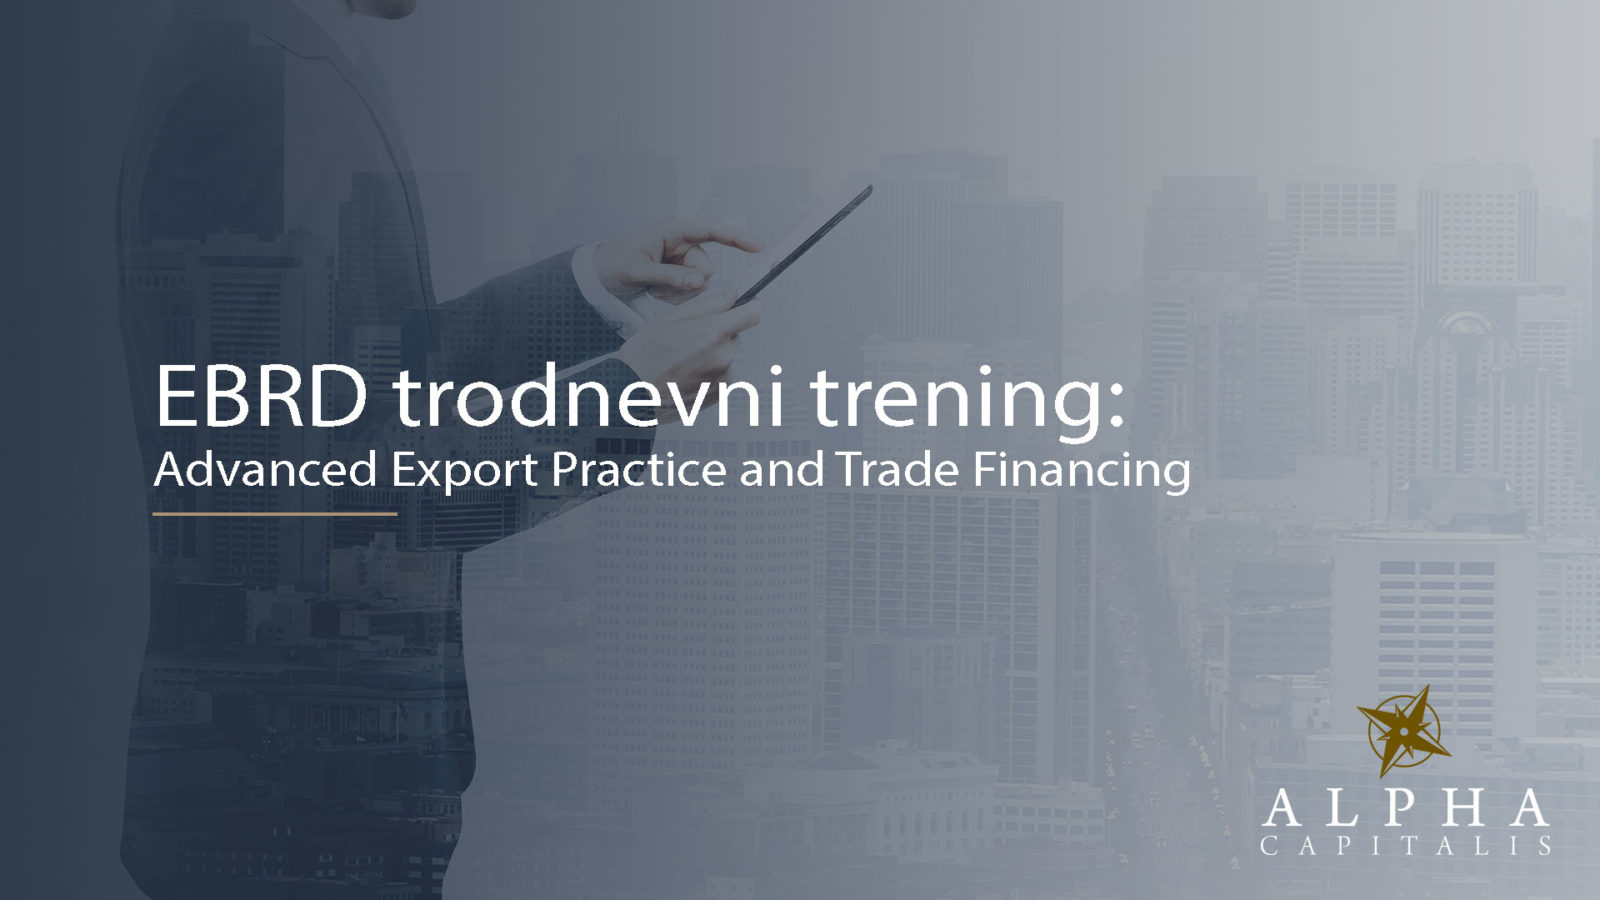 EBRD seminar - Trodnevni trening: Advanced Export Practice and Trade Financing